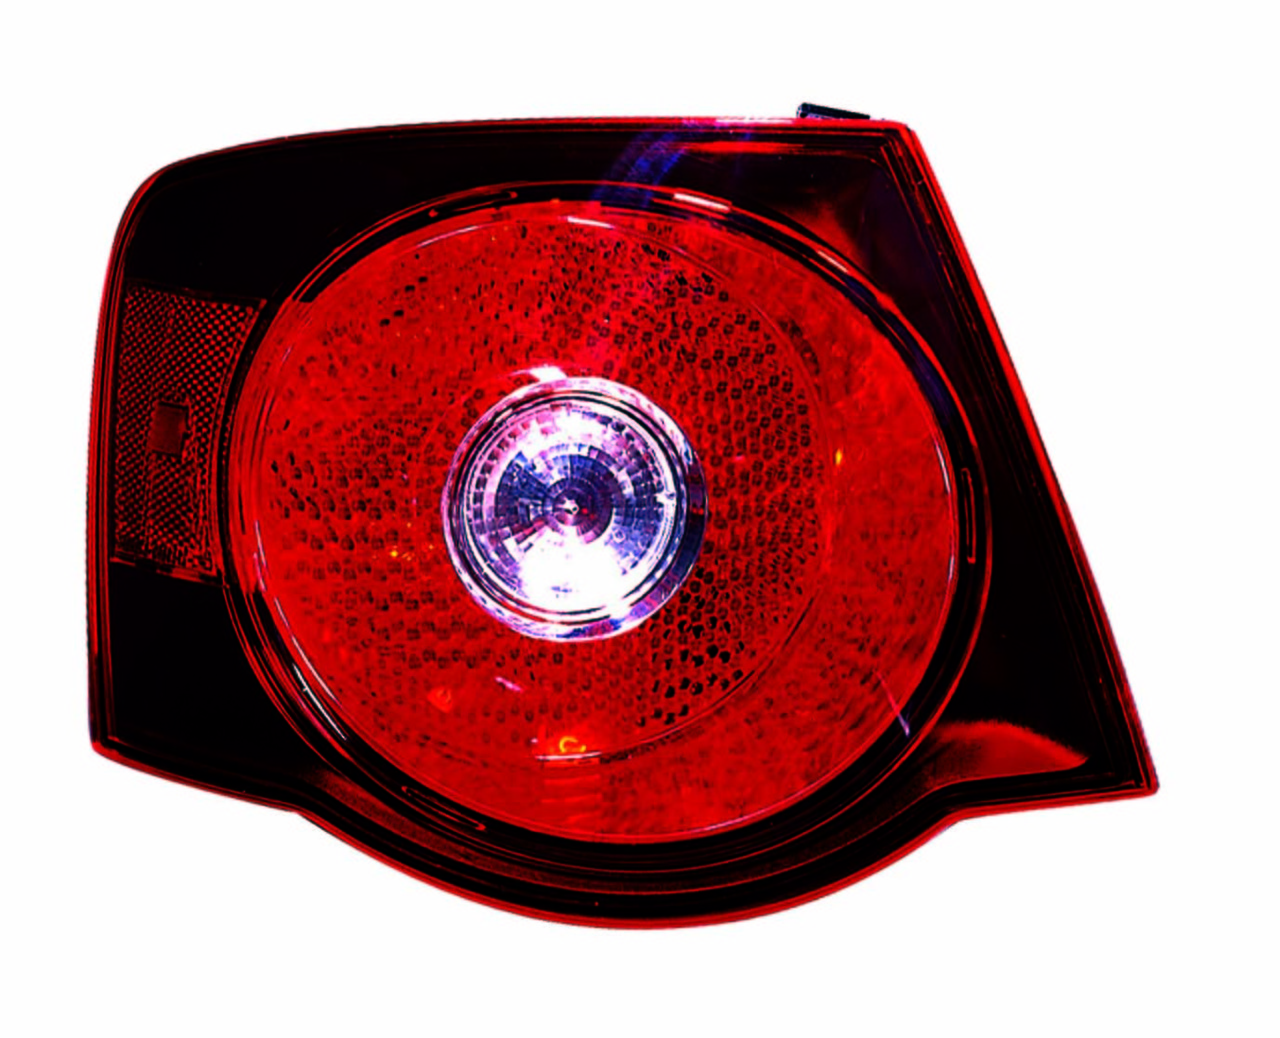 Volkswagen Jetta 2008 2009 2010 tail light left driver